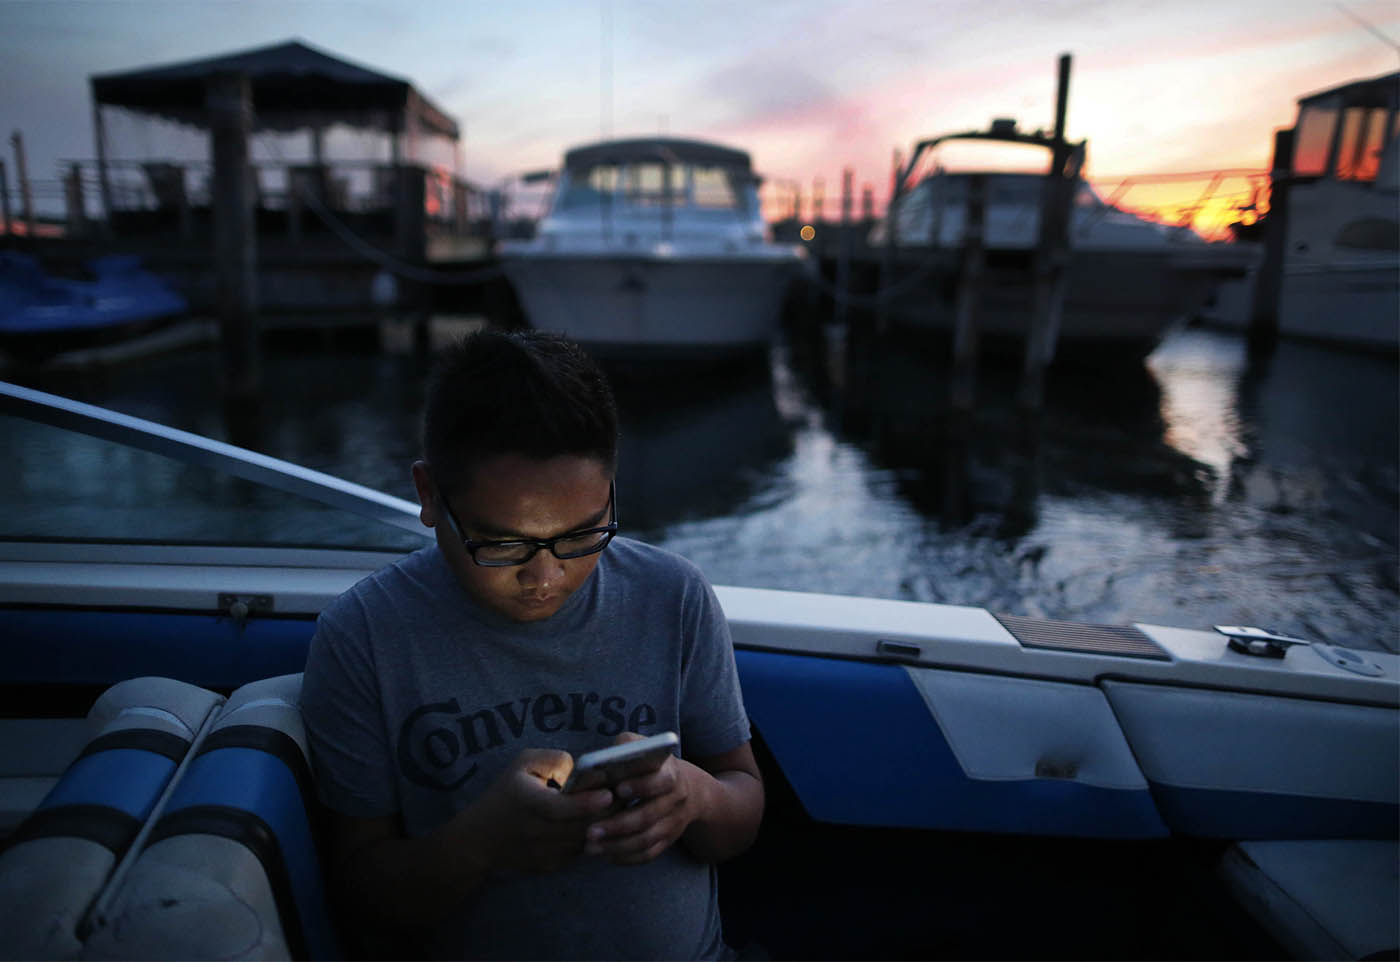 Aung Kaung Myat relaxes on his boat in the Niagara River, Friday, Sept. 25, 2015. Myat came to Buffalo as a refugee from Myanmar and now runs a thriving business. (Photo by Derek Gee / Buffalo News)